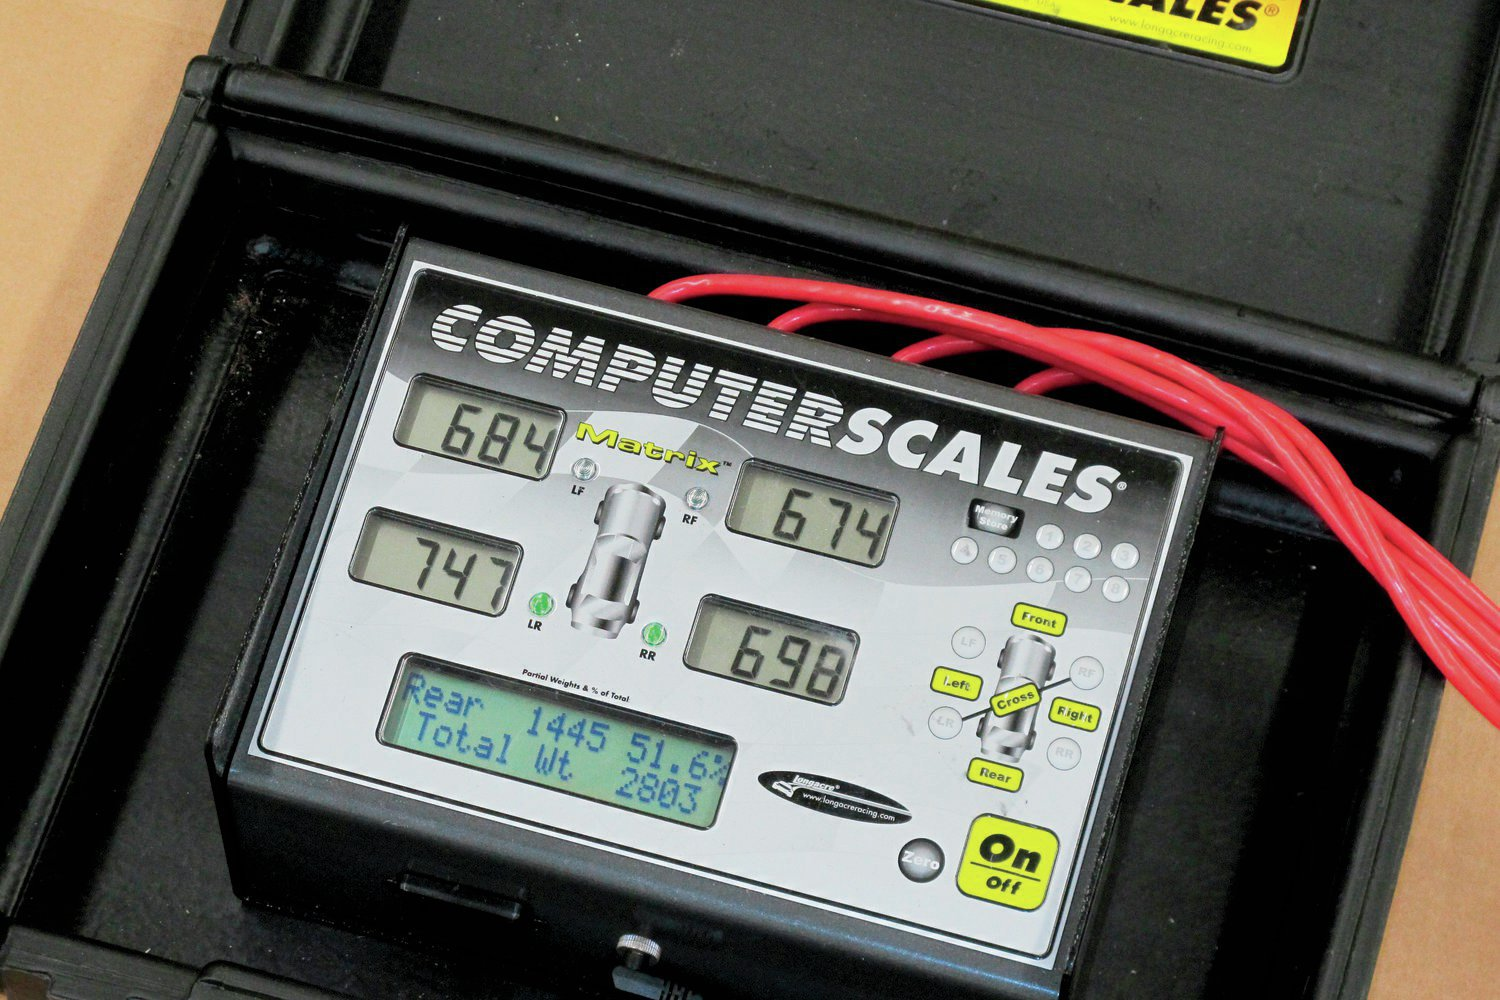 Individual electronic scales were used at each wheel of our subject Chevrolet. The 2,800-pound coupe was reasonable and well balanced.